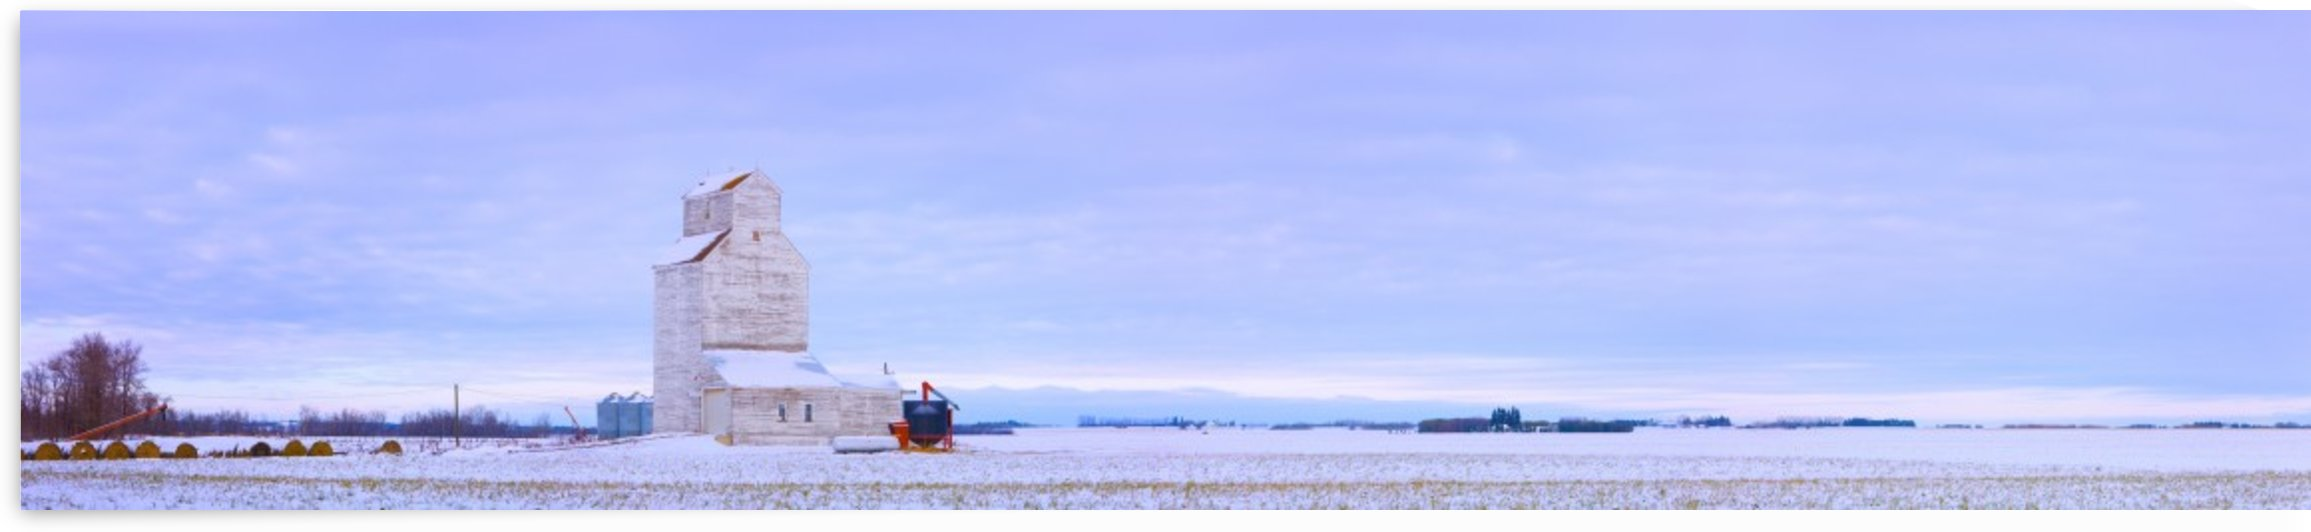 Grain Elevator In Early Winter Field, Morinville, Alberta, Canada by PacificStock